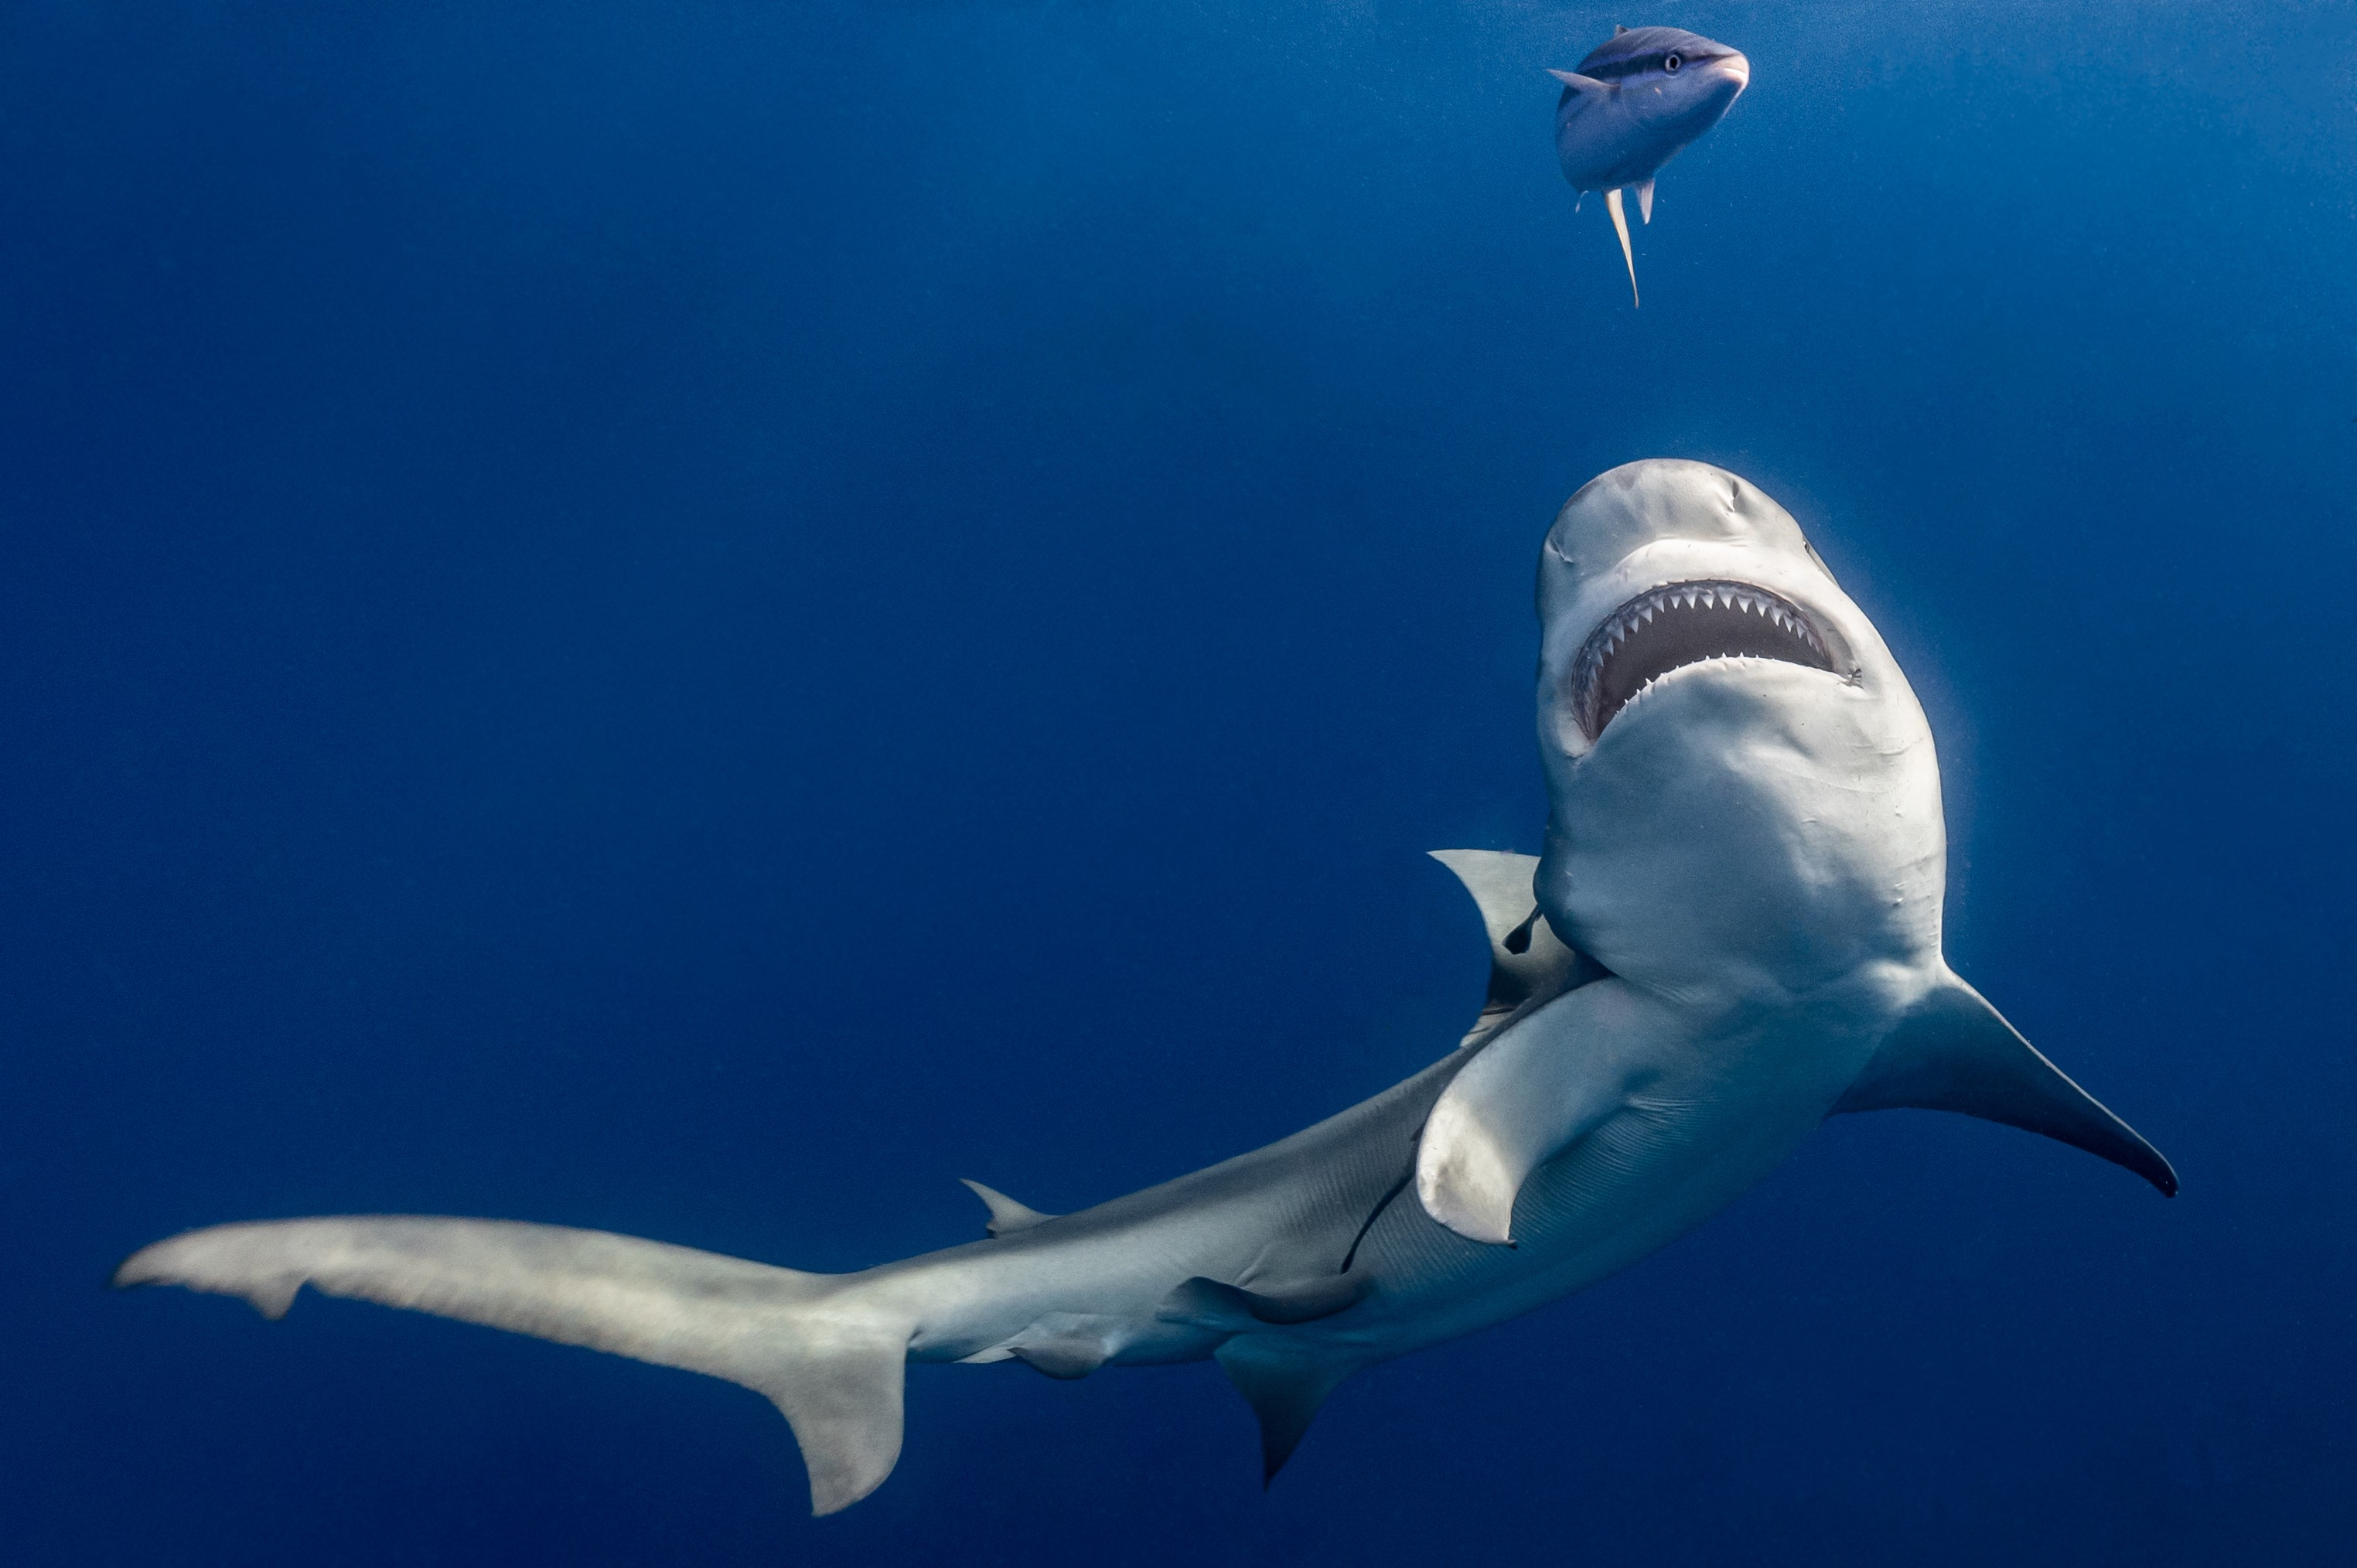 A photograph of a shark with bared teeth swimming in clear, gradient blue ocean water, another shark appears in the background